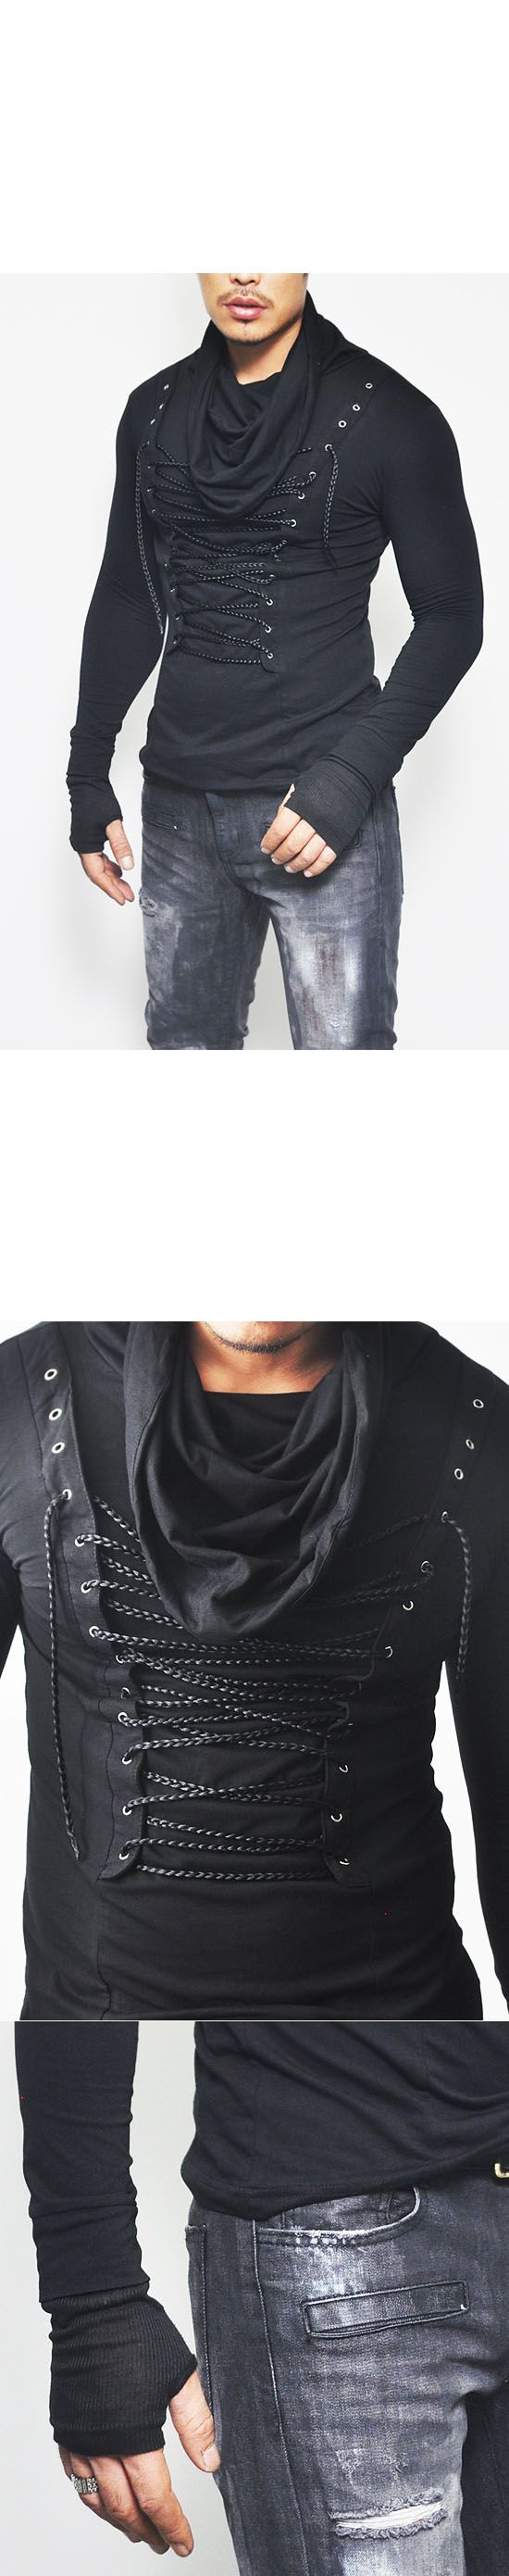 Tops :: Eyelet Turtle Shirring Slim Armwarmer-Tee 240 - Mens Fashion Clothing For An Attractive Guy Look